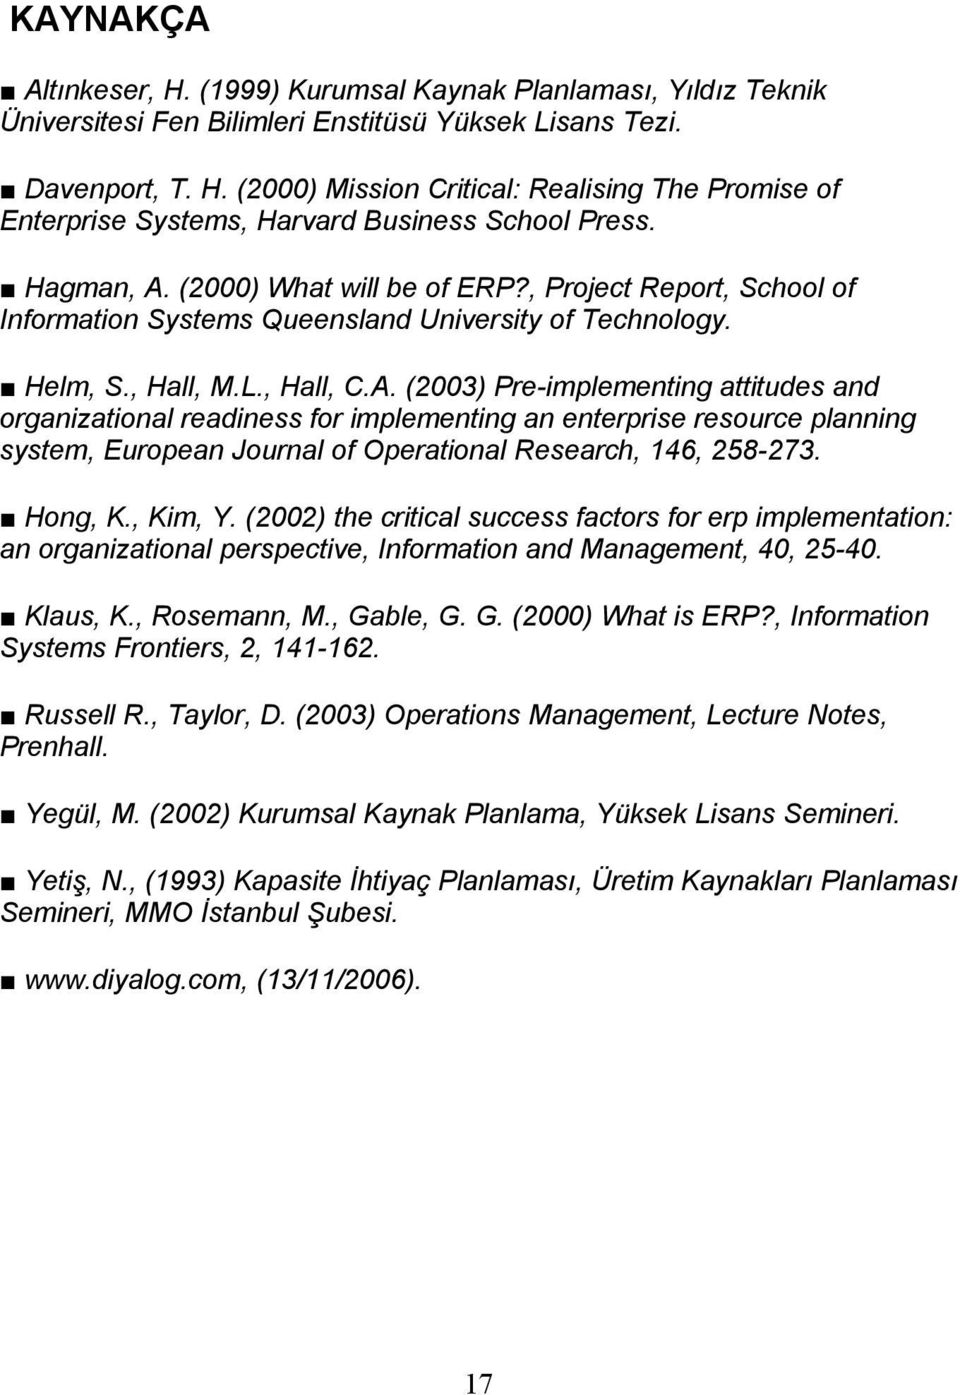 Hong, K., Kim, Y. (2002) the critical success factors for erp implementation: an organizational perspective, Information and Management, 40, 25-40. Klaus, K., Rosemann, M., Gable, G. G. (2000) What is ERP?